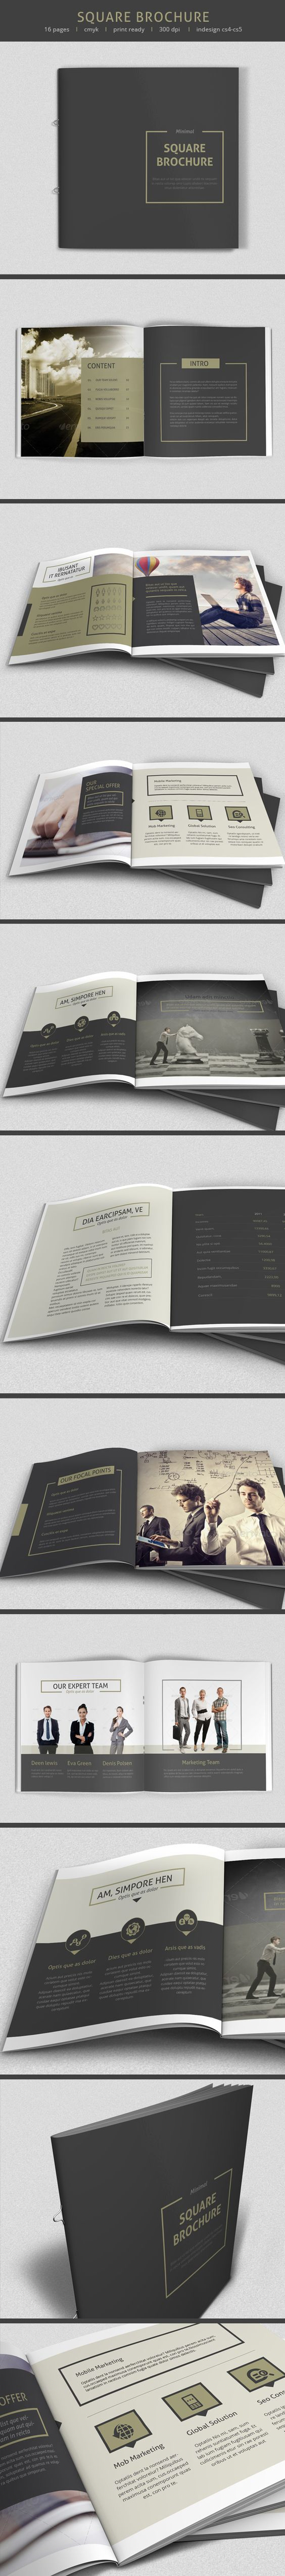 16 page professional, clean, brochure template Just drop in your own photos and texts.